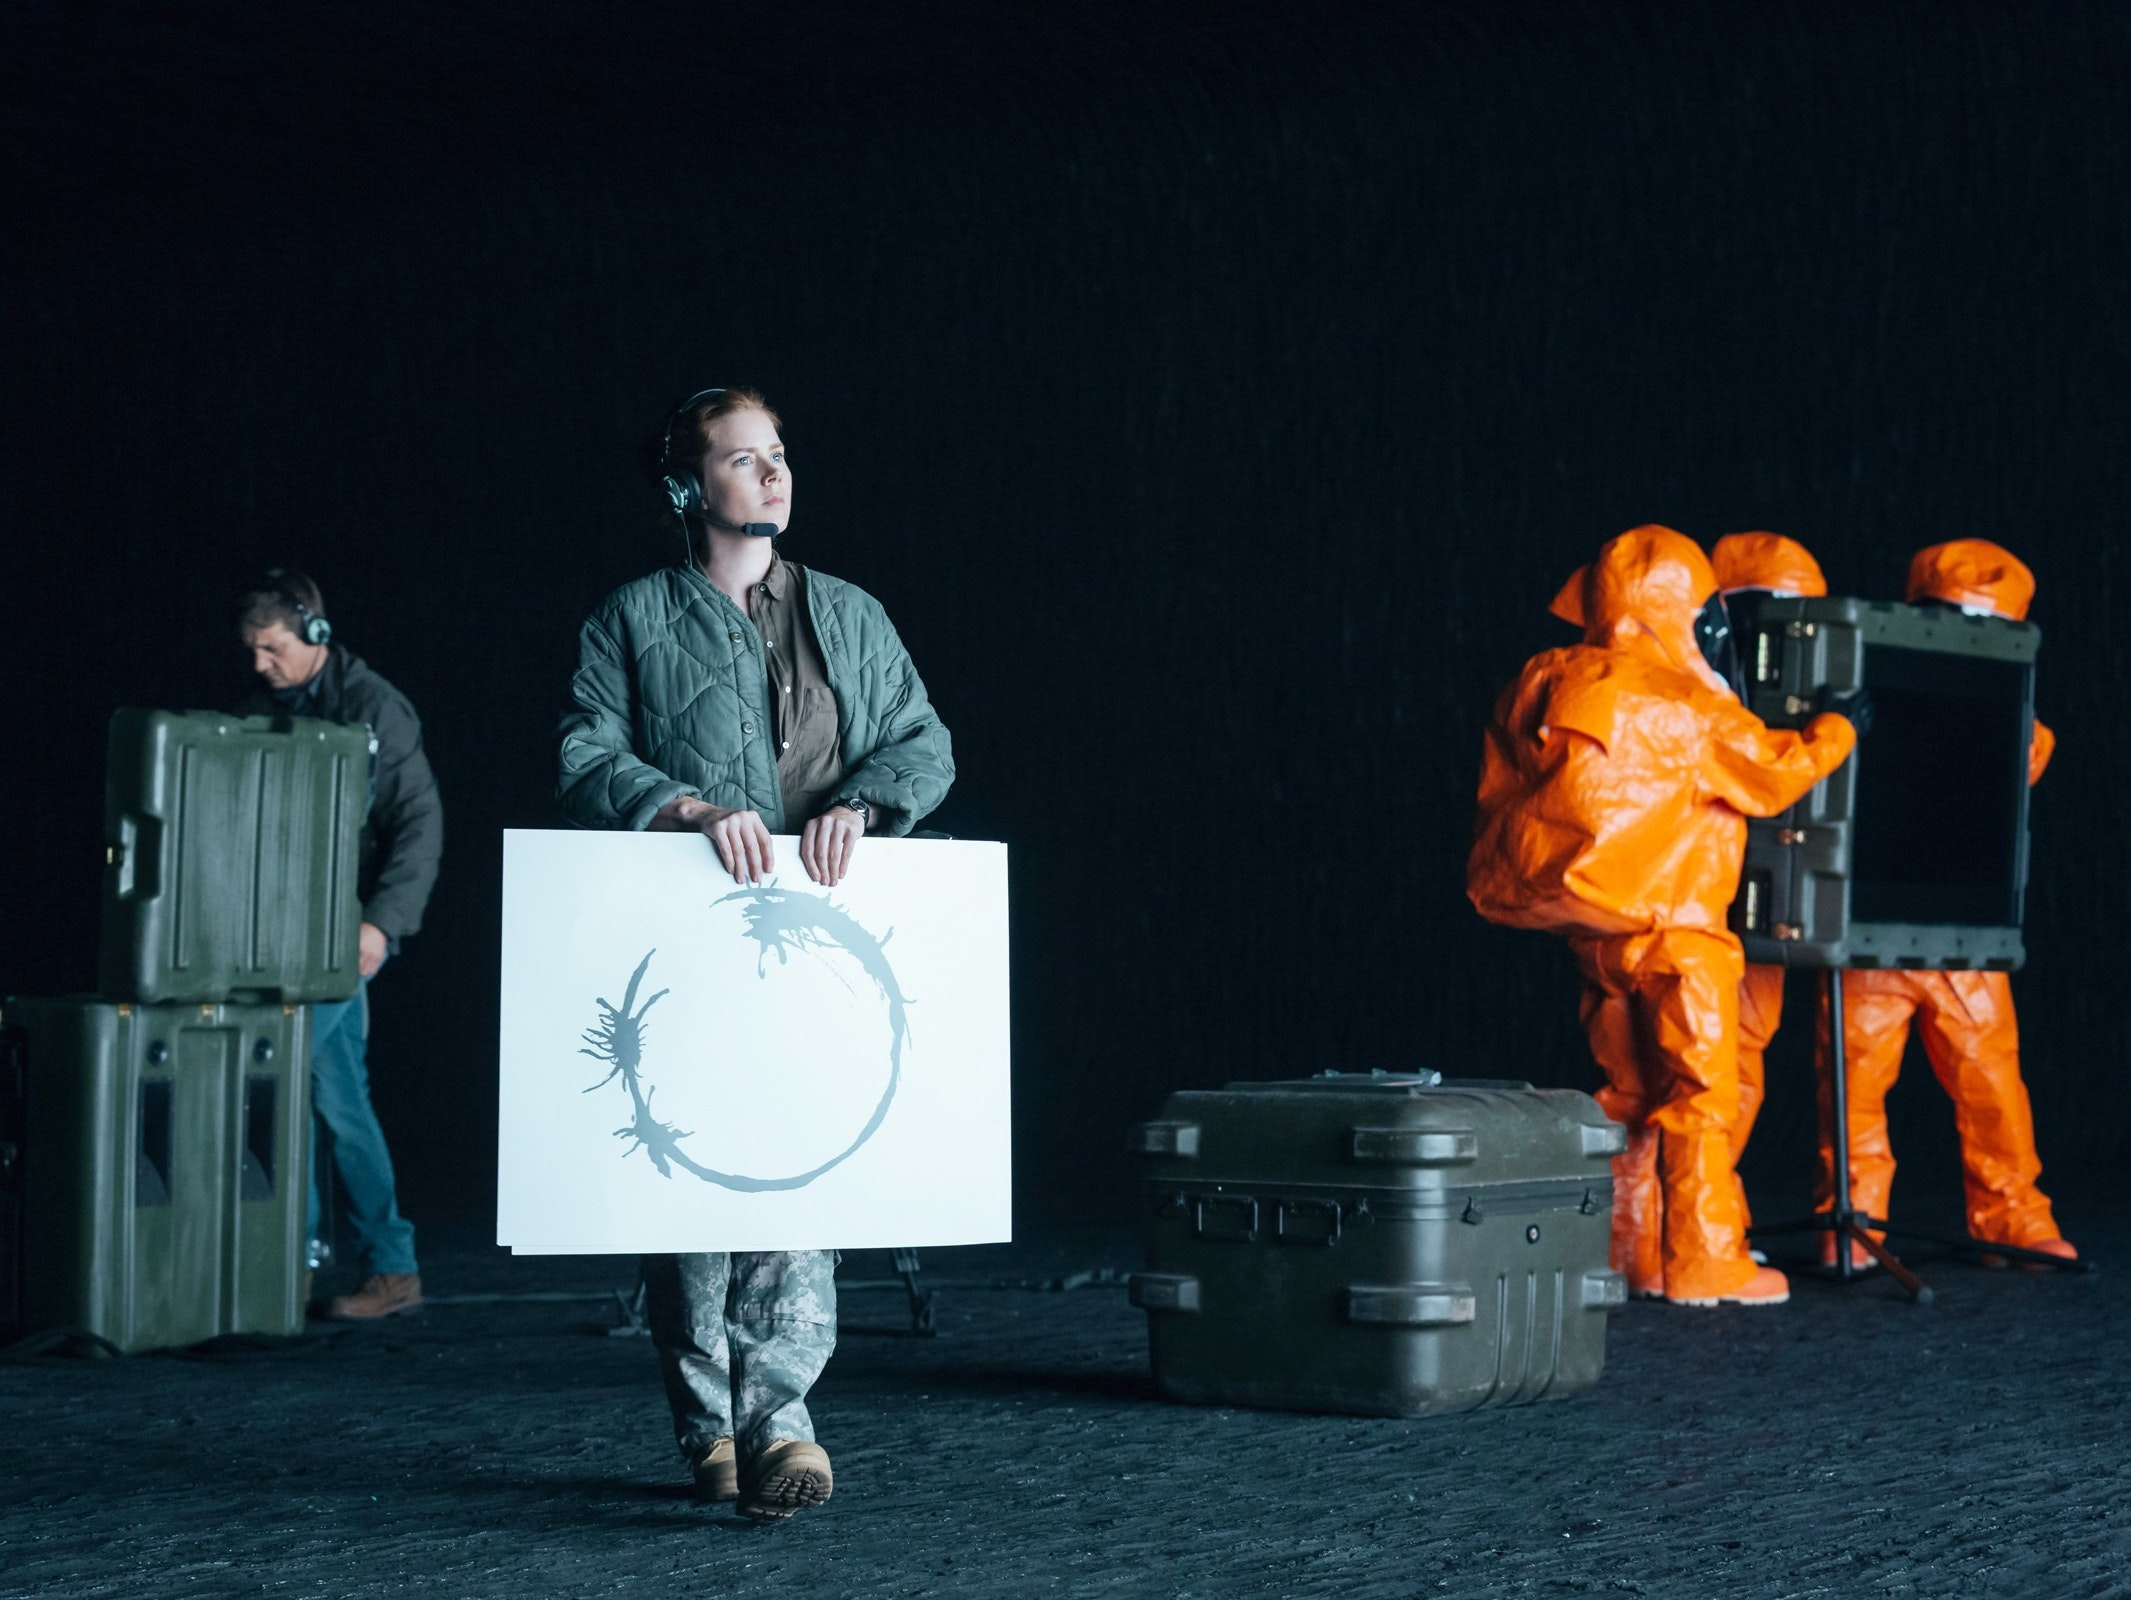 Friendly Aliens Get Oscar Nods: 'Arrival' Continues an Academy Trend